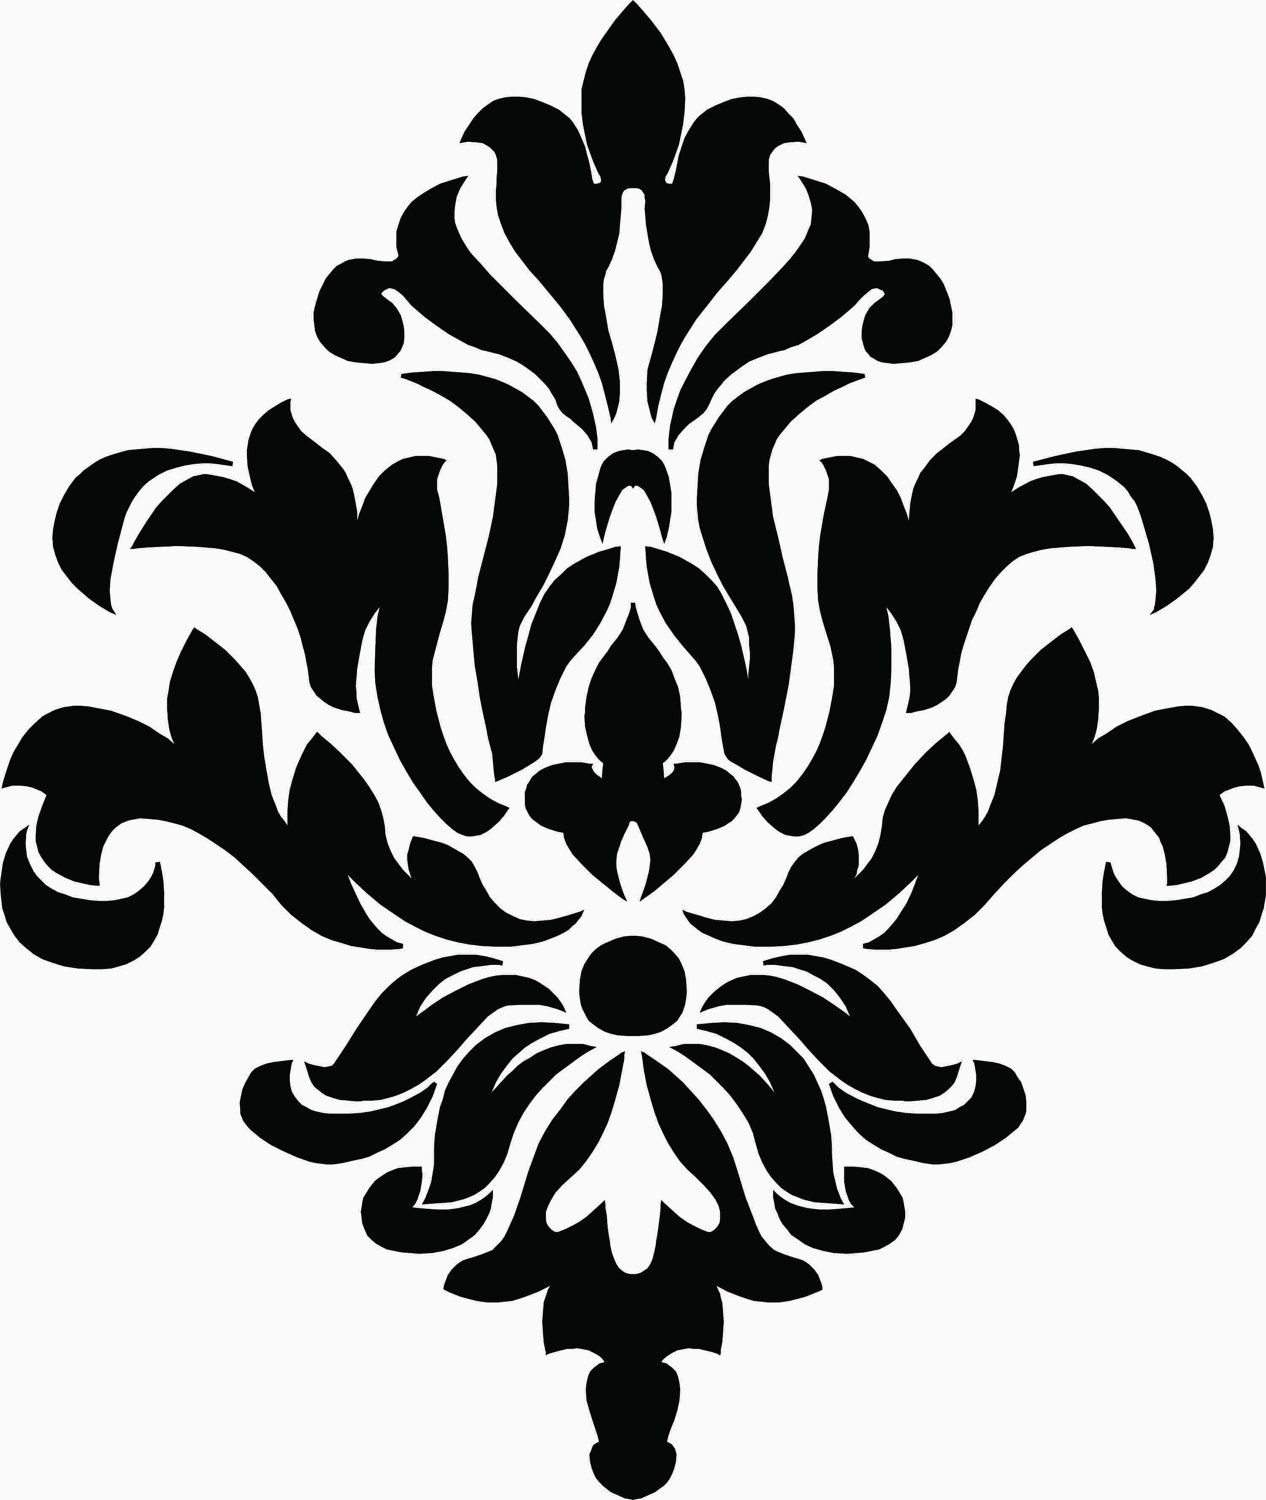 Damask wall decal free shipping 1499 via etsy our apartment clipart of a pink victorian floral damask design element 2 royalty free vector illustration by bestvector amipublicfo Gallery